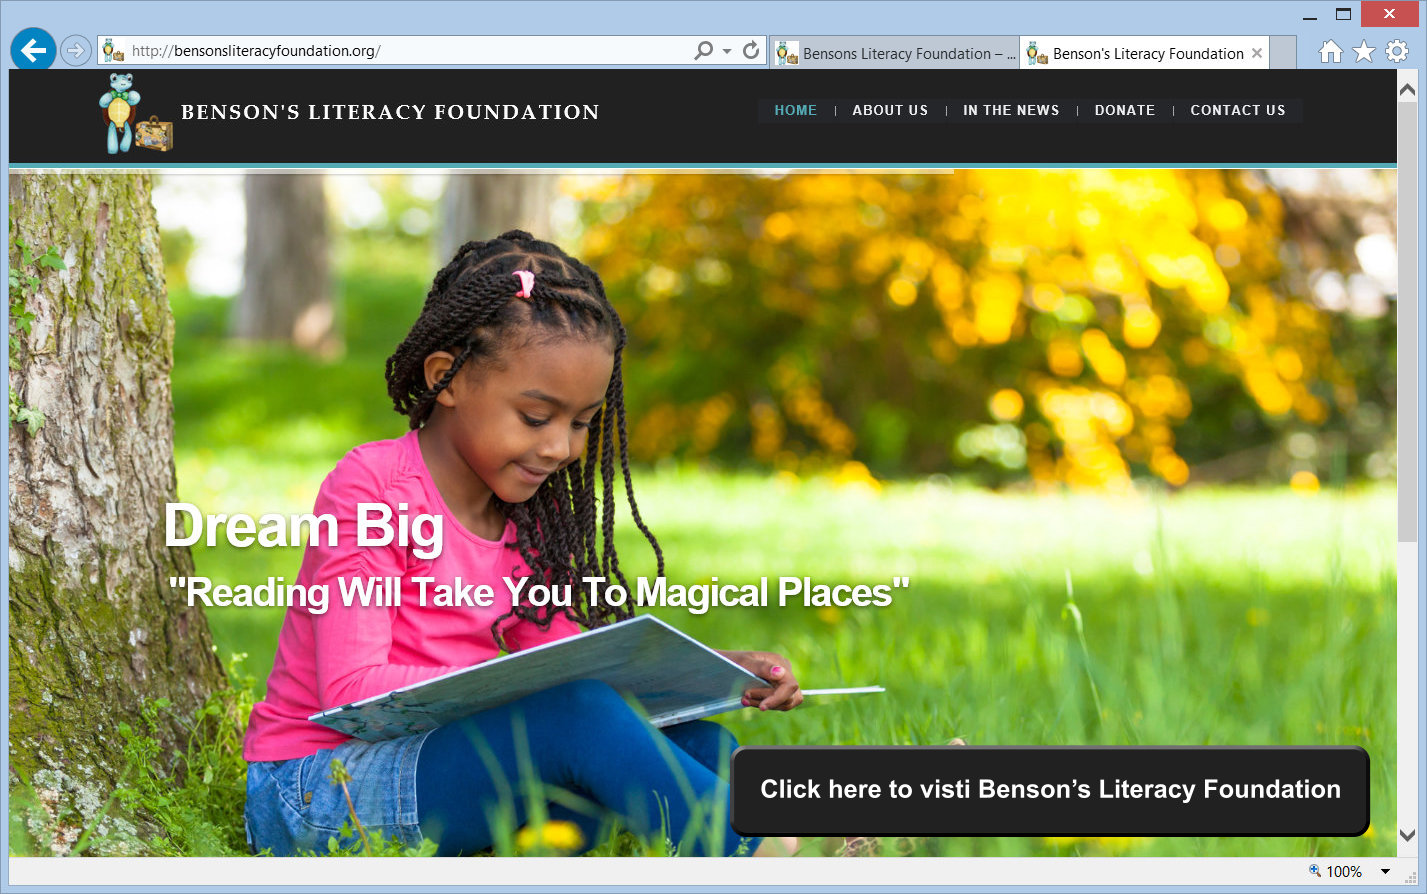 Visit Benson's Literacy Foundation website